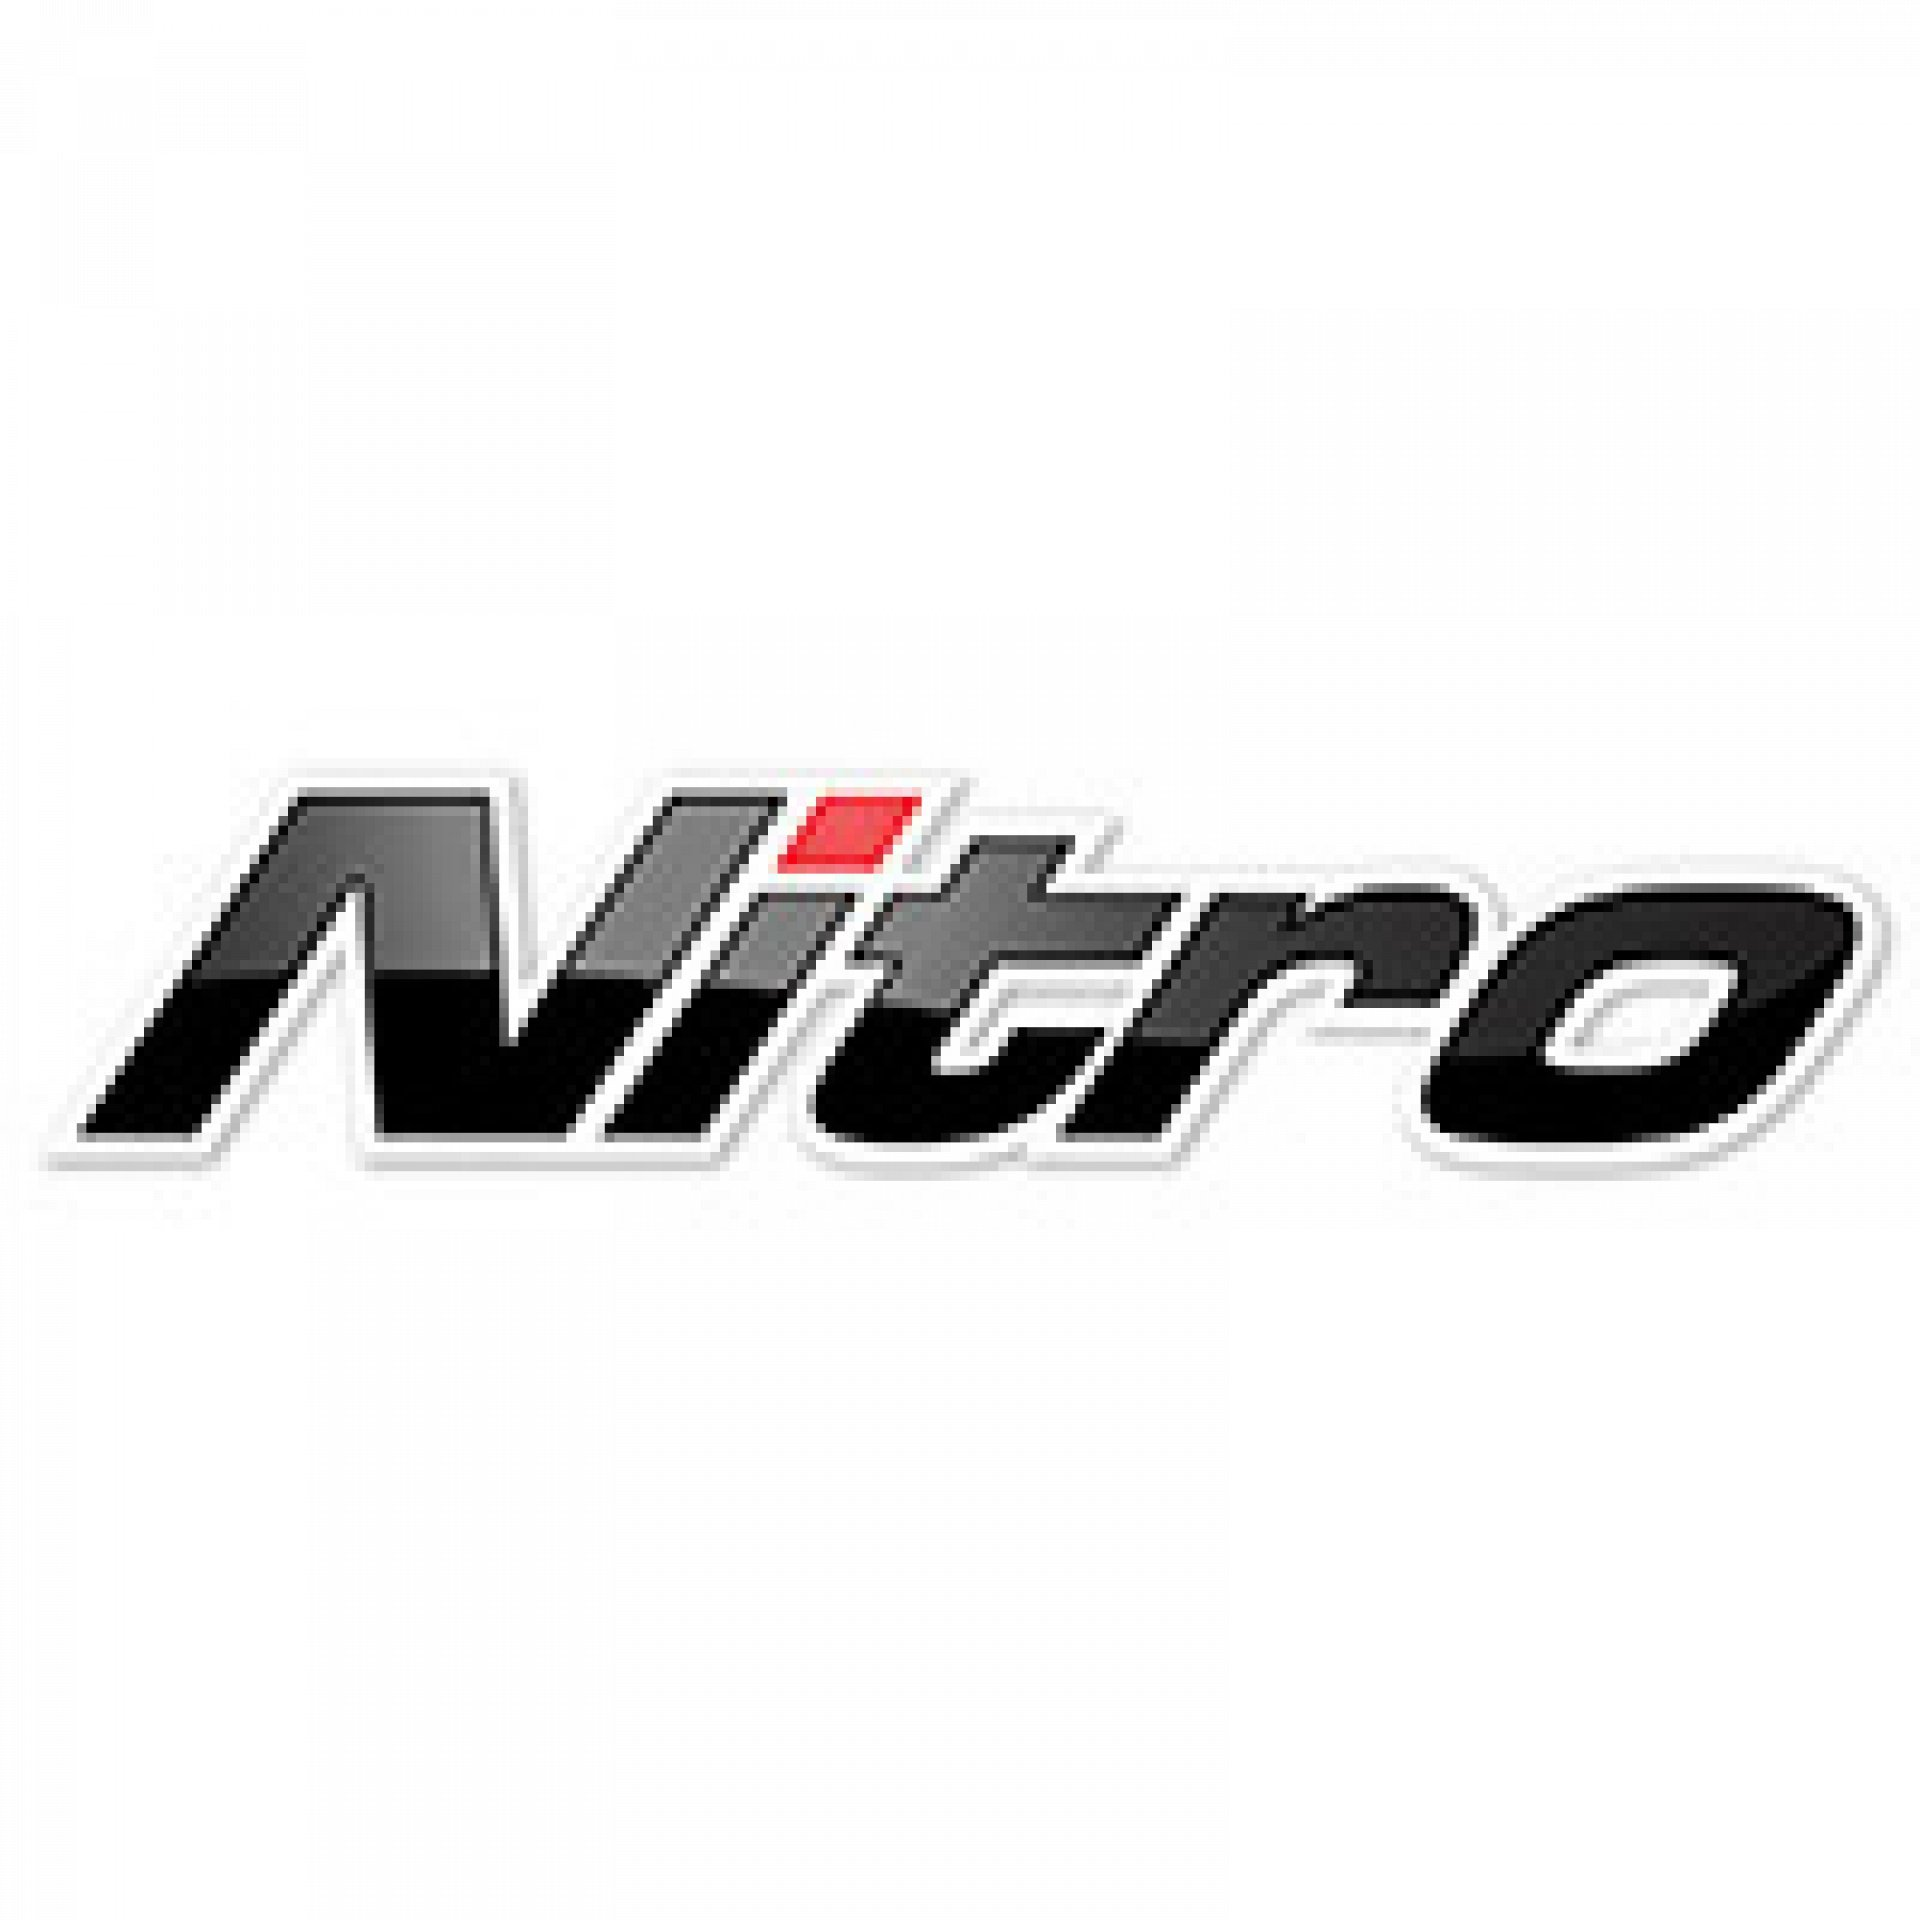 Nitro motorcycle helmets for sale